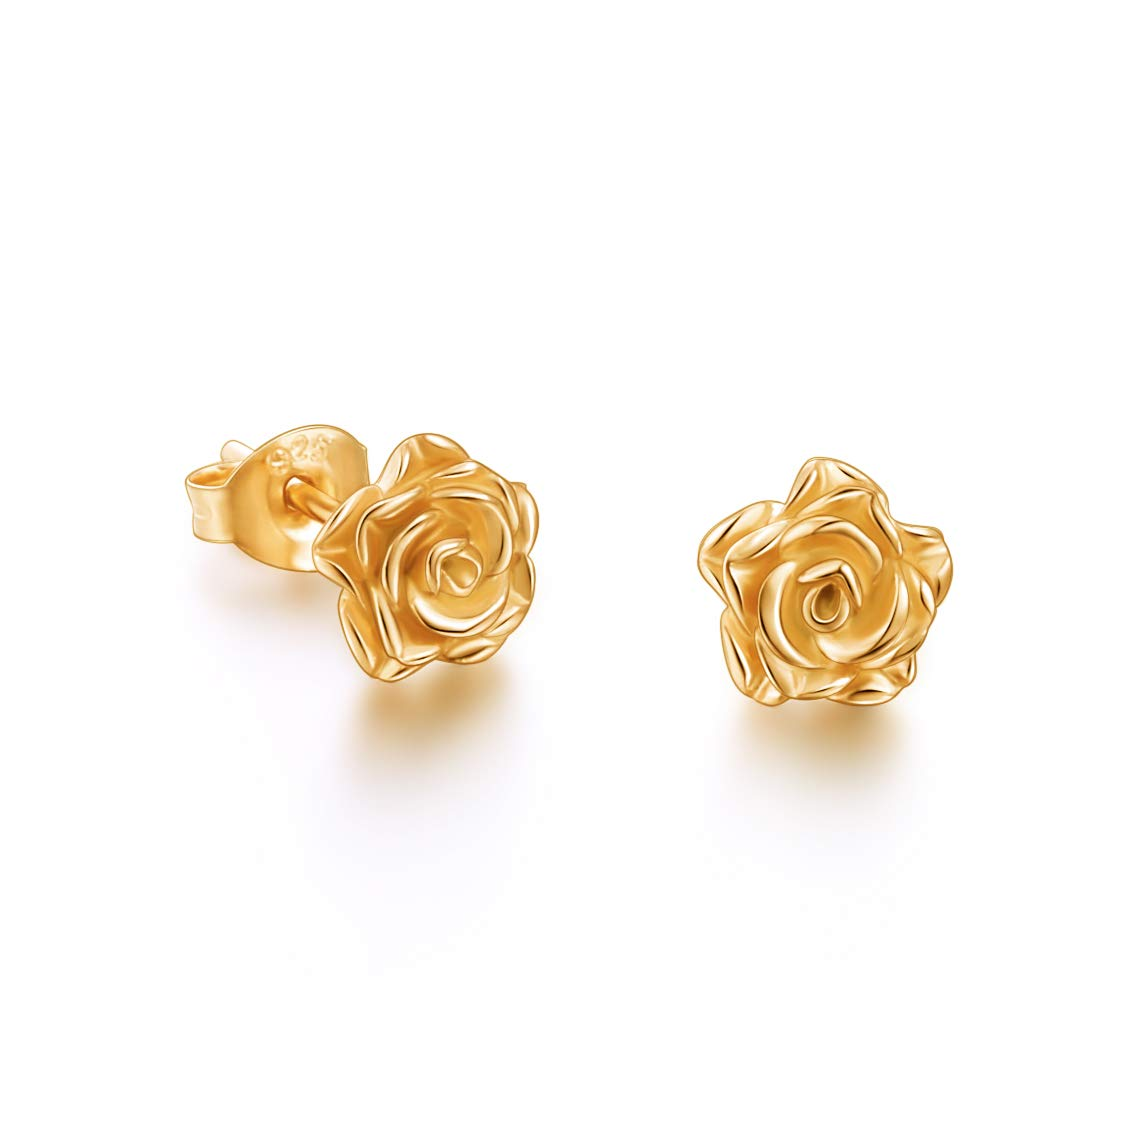 S925 Gold-plated Sterling Silver Rose Flower Earrings